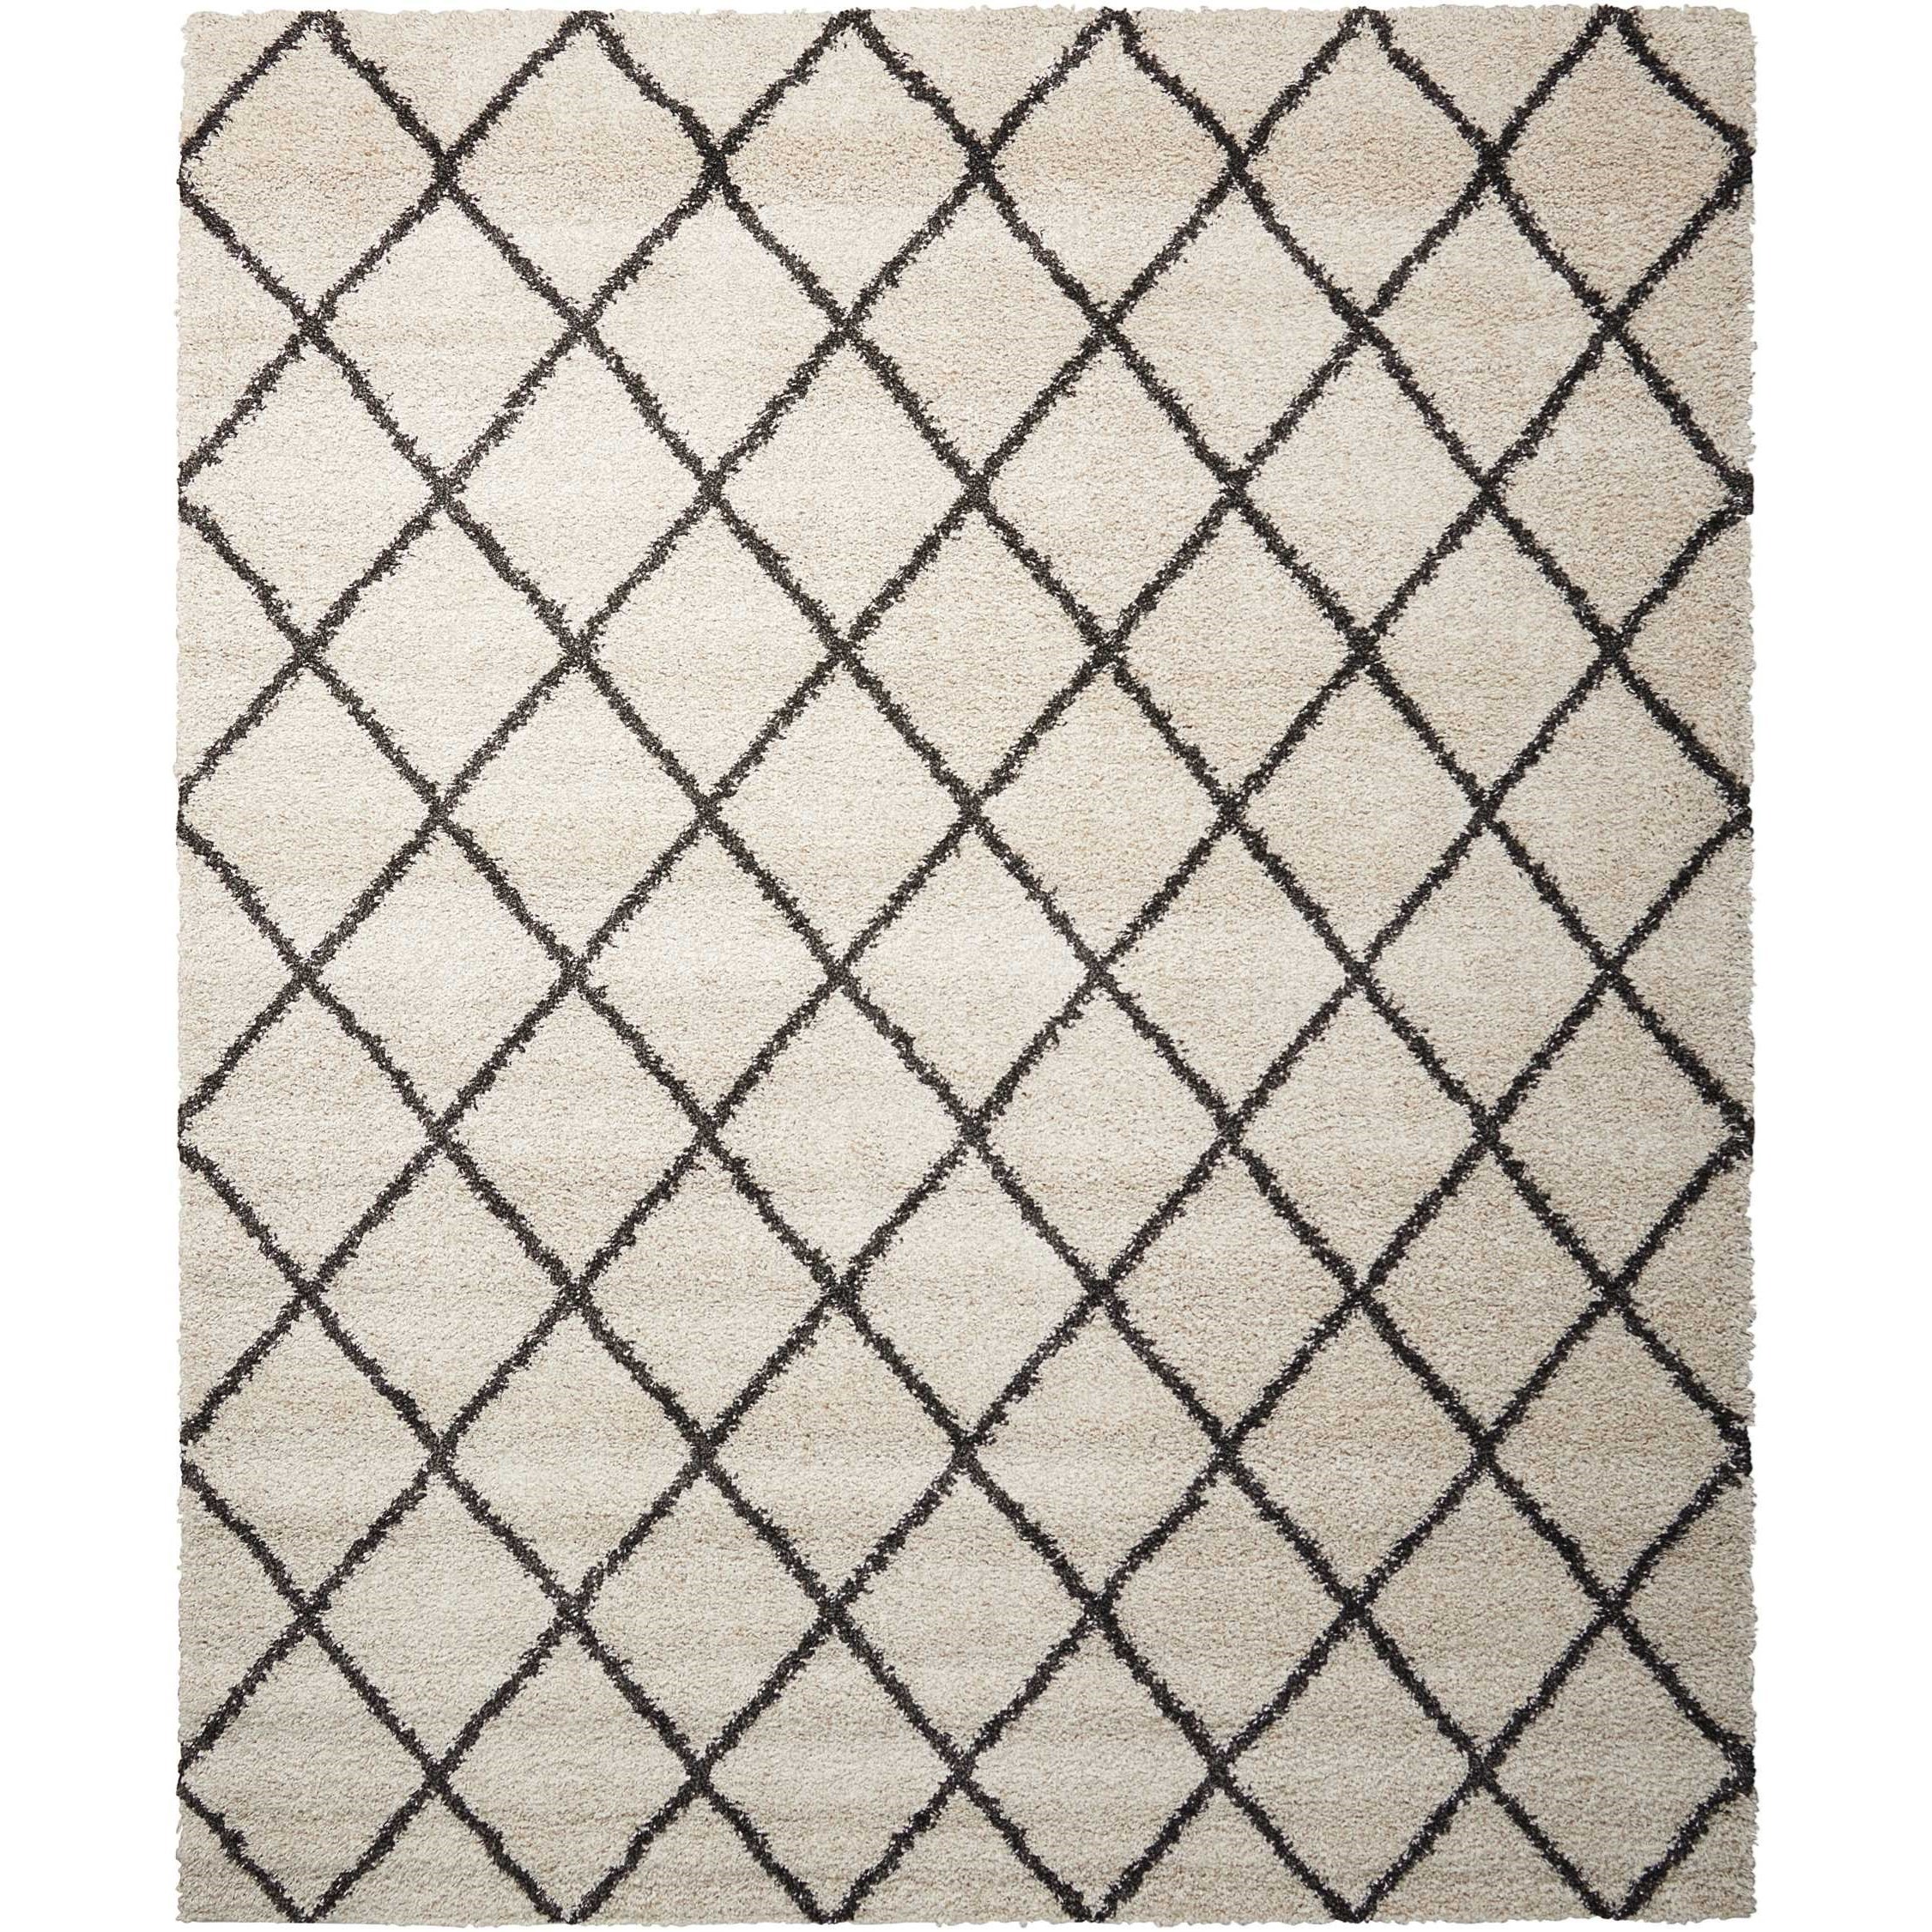 "Brisbane 8'2"" x 10' Ivory/Charcoal Rectangle Rug by Nourison at Home Collections Furniture"